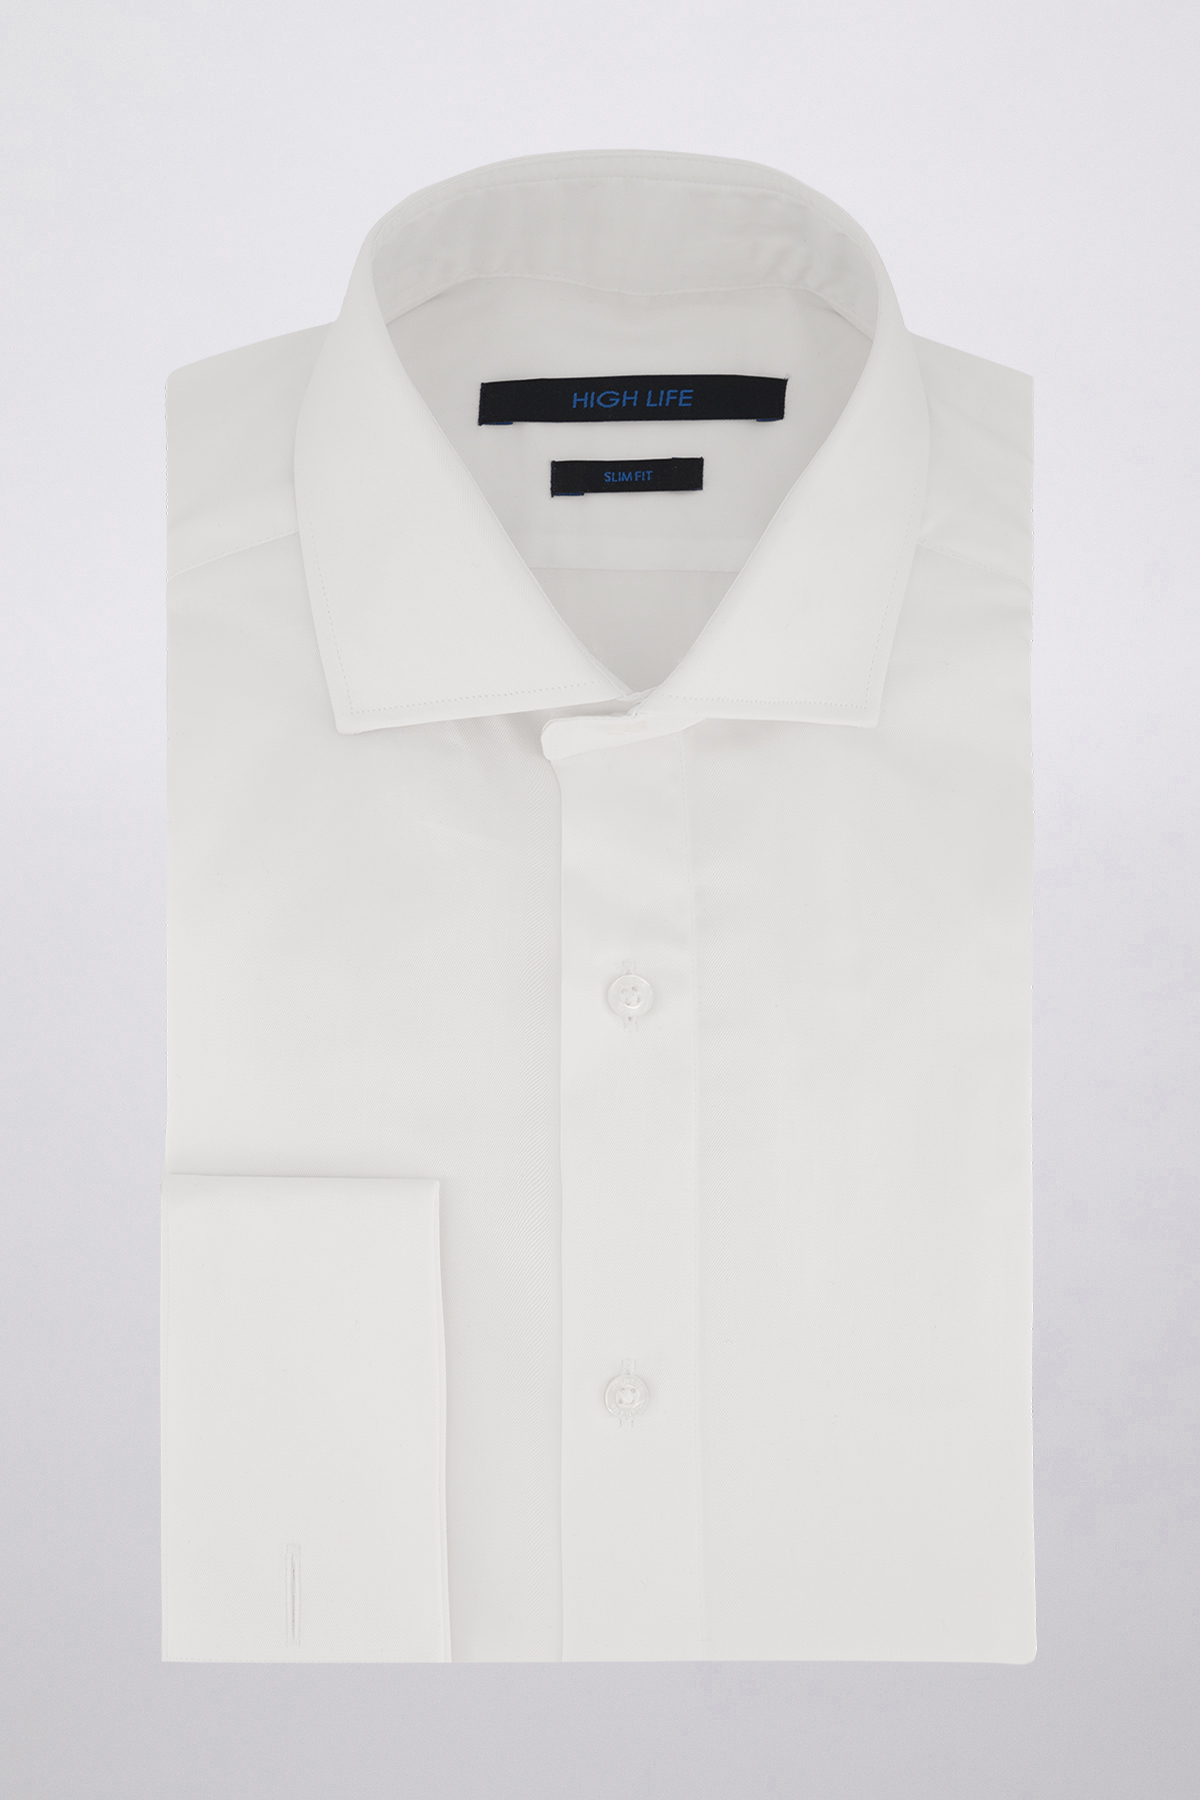 Camisa Vestir marca HIGH LIFE color Blanco